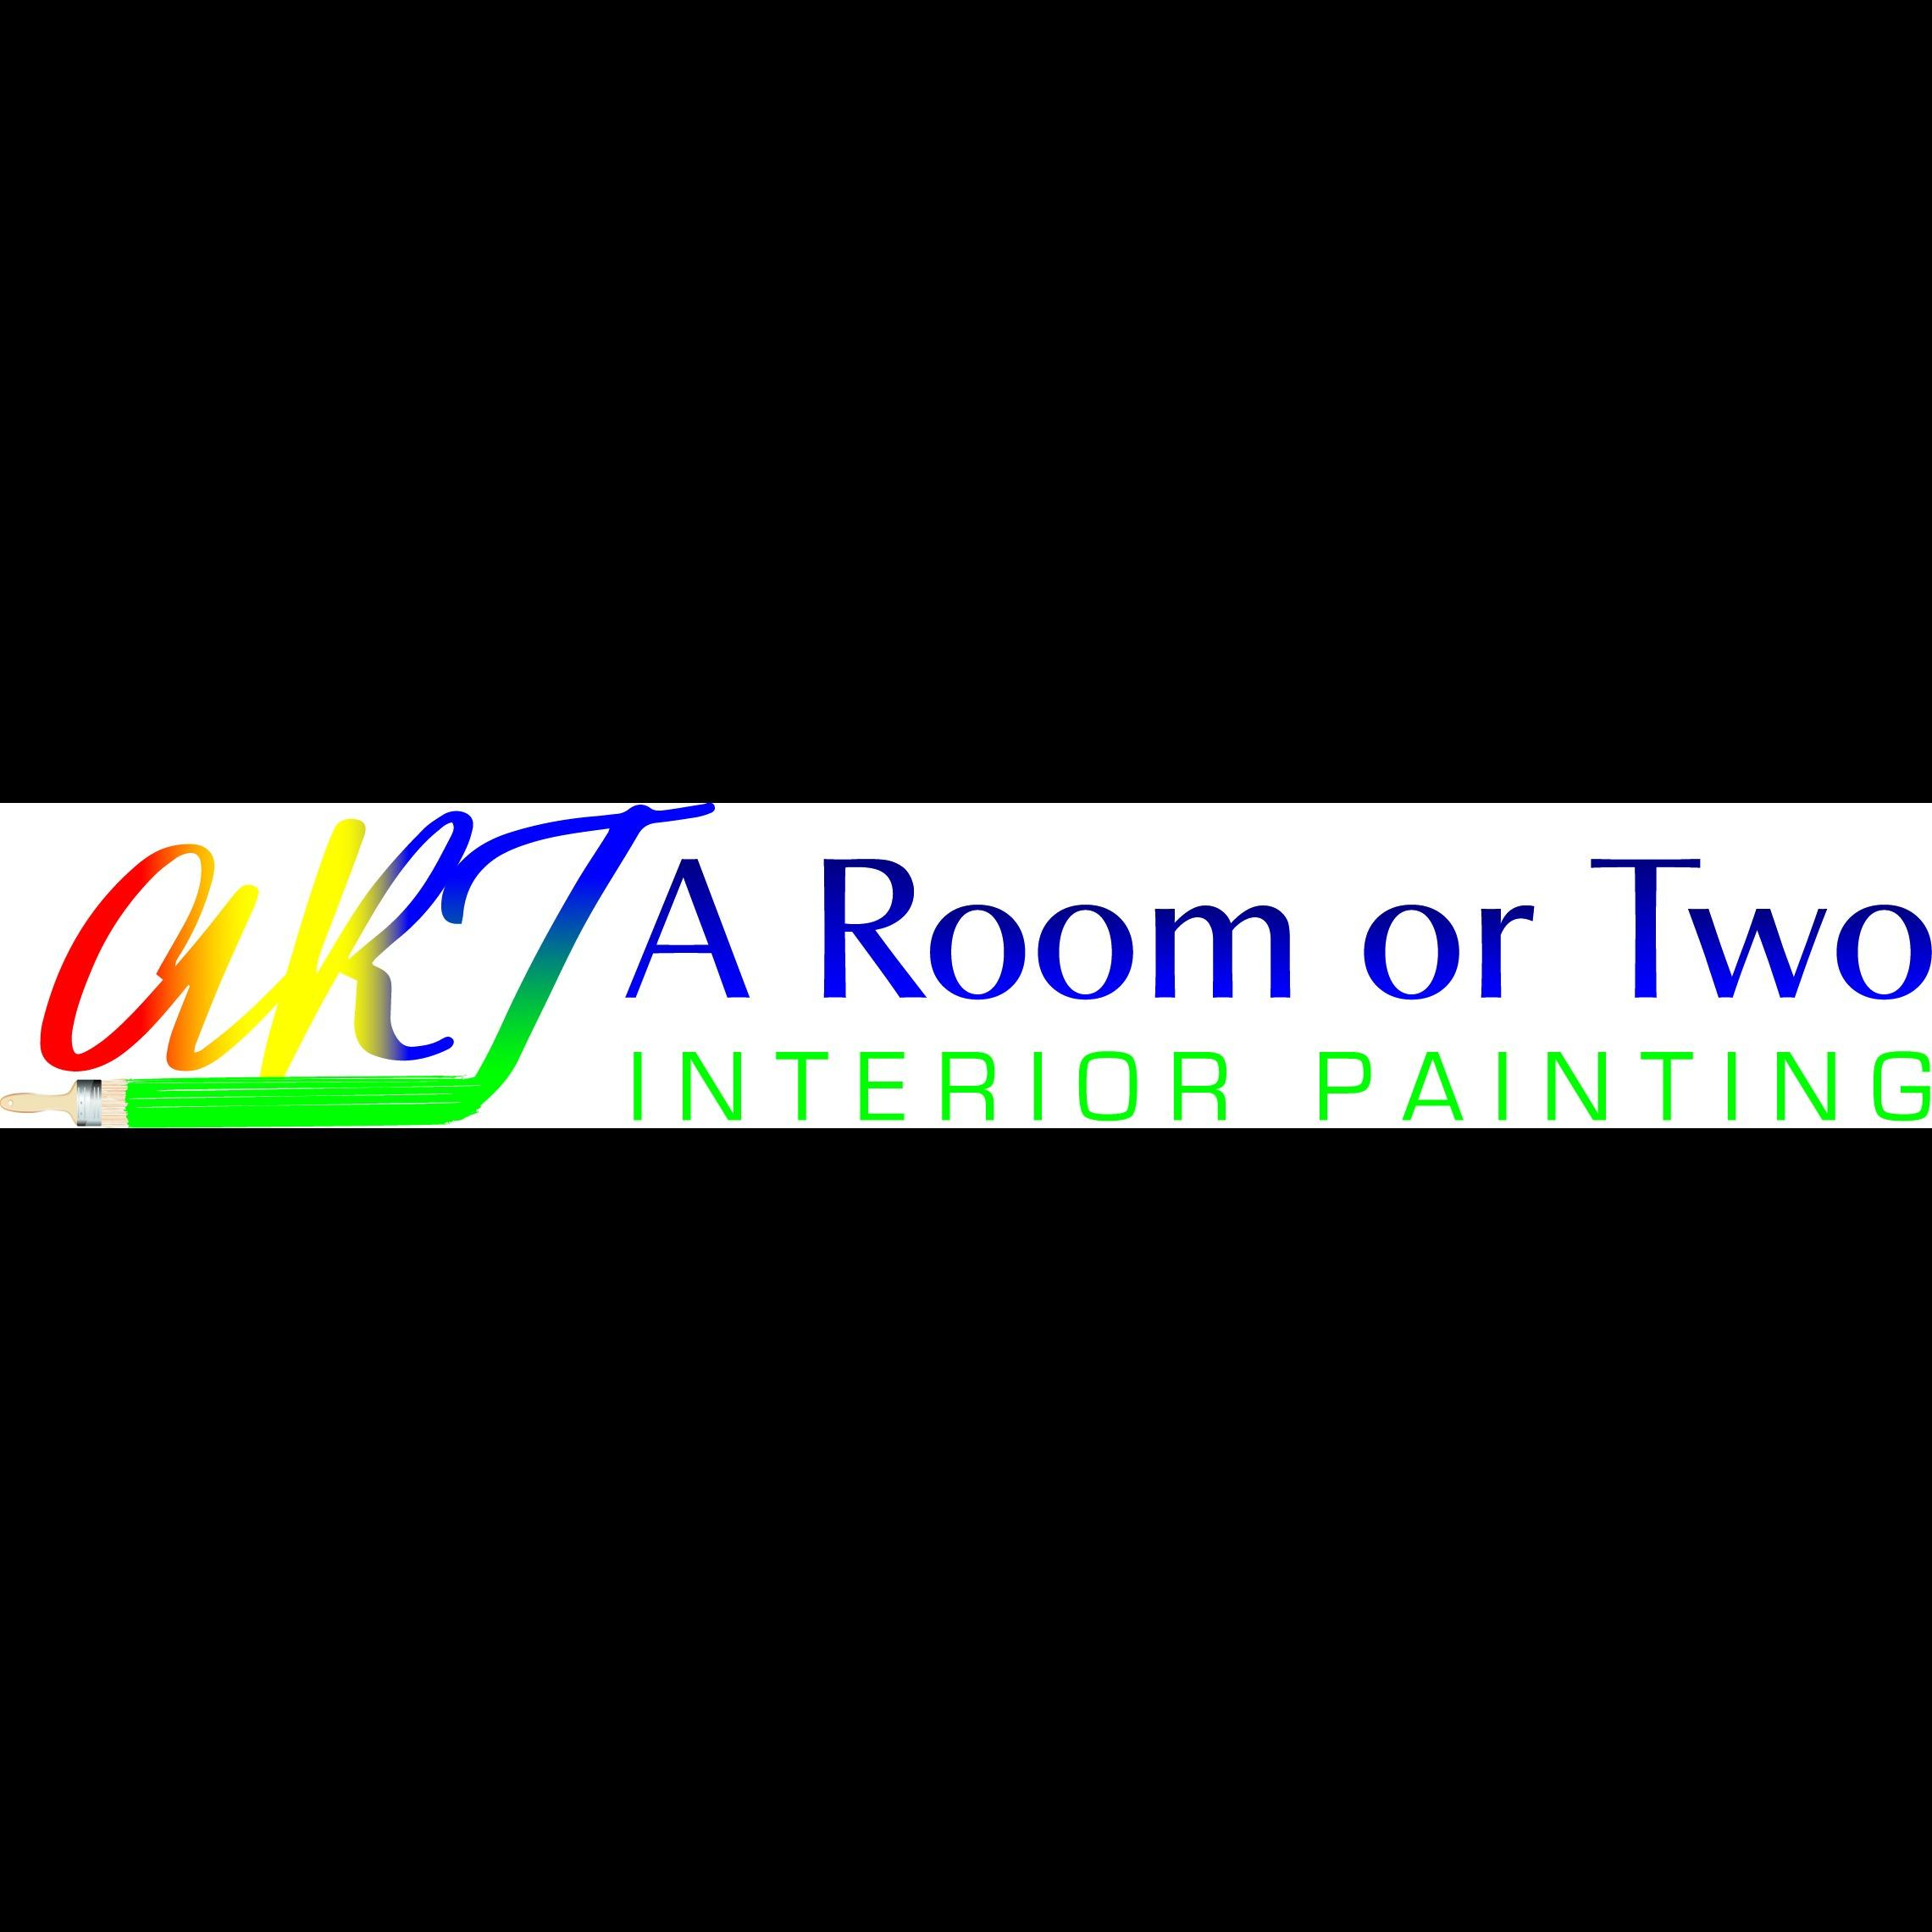 A Room or Two Interior Painting, LLC - Severance, CO 80550 - (970)815-6943 | ShowMeLocal.com